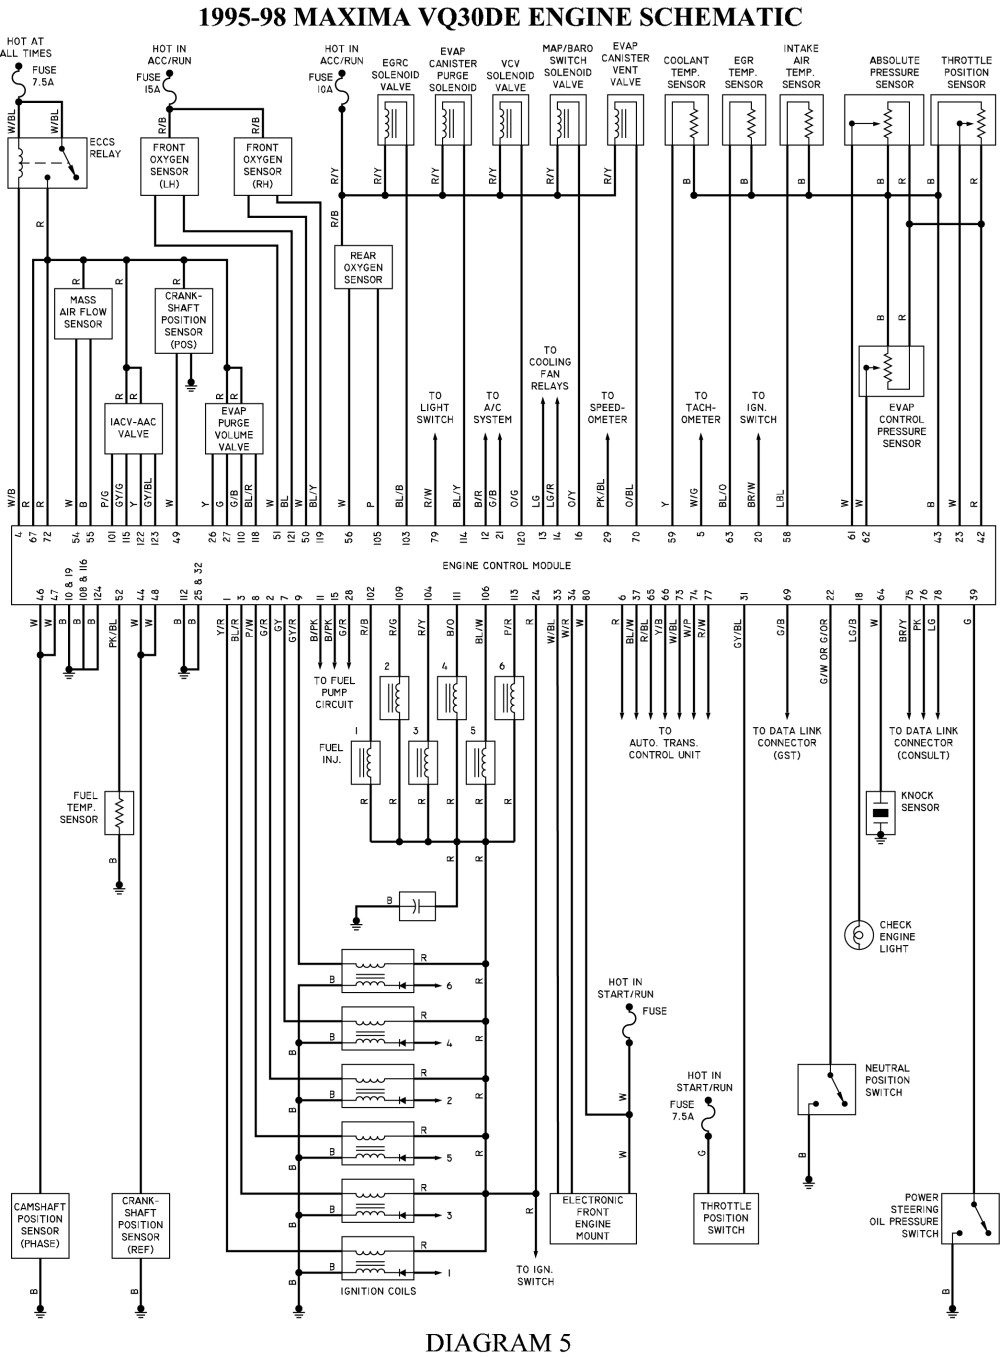 Nissan Radio Wiring Diagram : Wiring diagram for nissan sentra engine library